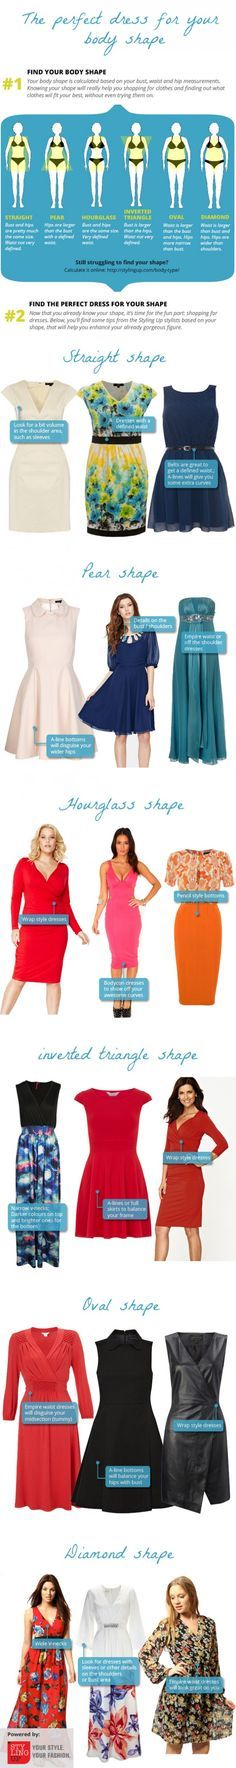 The perfect dress for your body shape El vestido perfecto según la forma de tu cuerpo